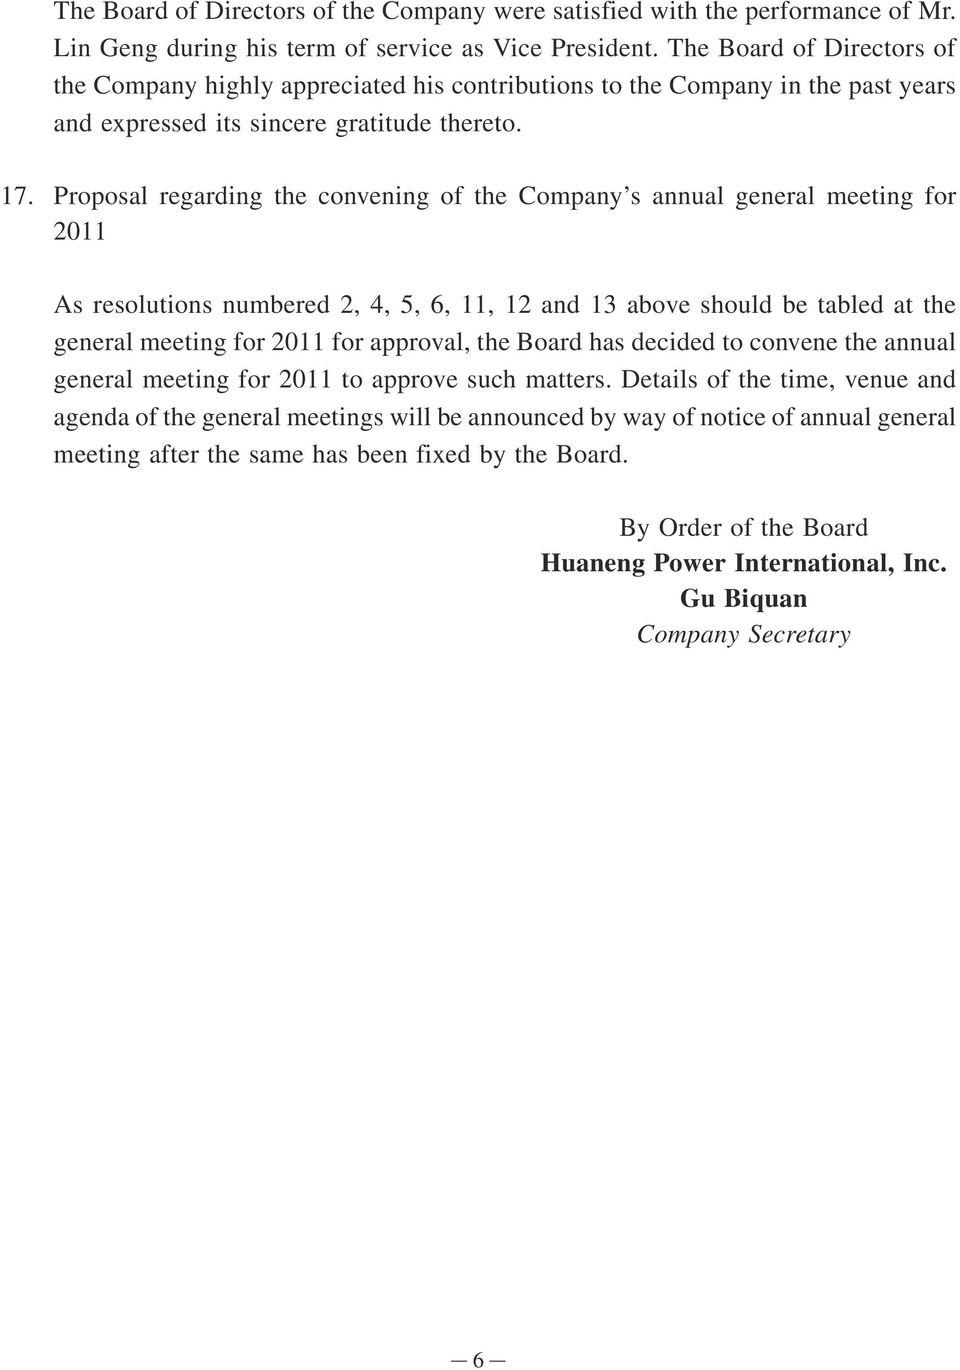 Proposal regarding the convening of the Company s annual general meeting for 2011 As resolutions numbered 2, 4, 5, 6, 11, 12 and 13 above should be tabled at the general meeting for 2011 for